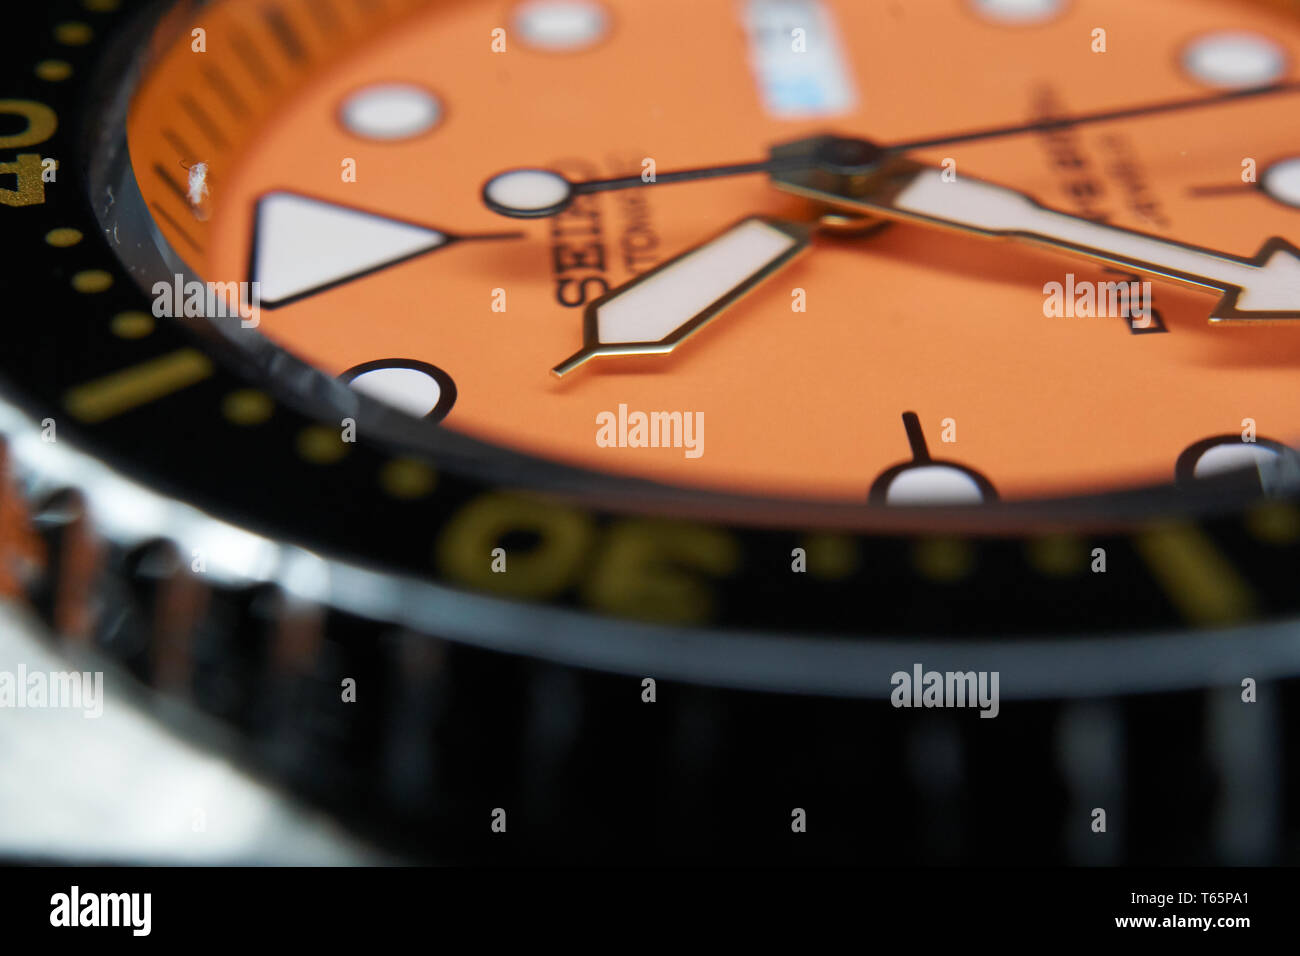 seiko skx011 orange dial - Stock Image